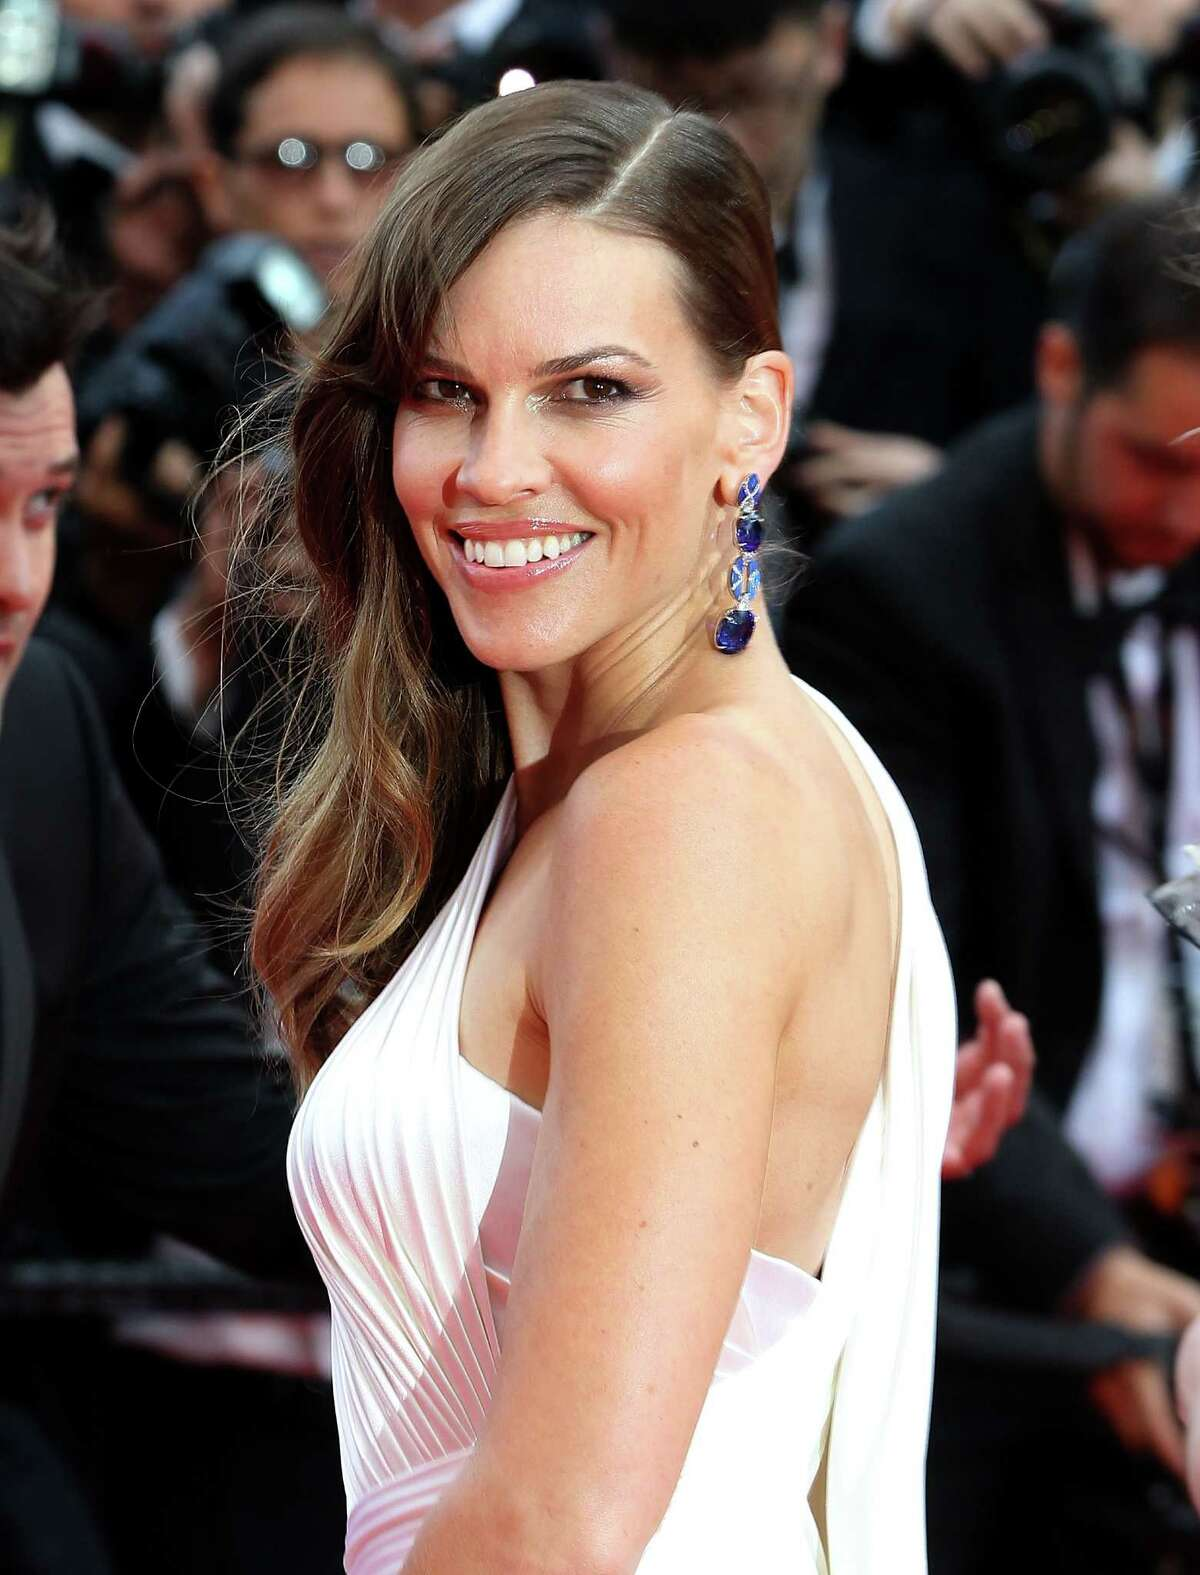 Hilary Swank grew up in Spokane and Bellingham, where she went to Sehome High School until she was 15. Here she's pictured at